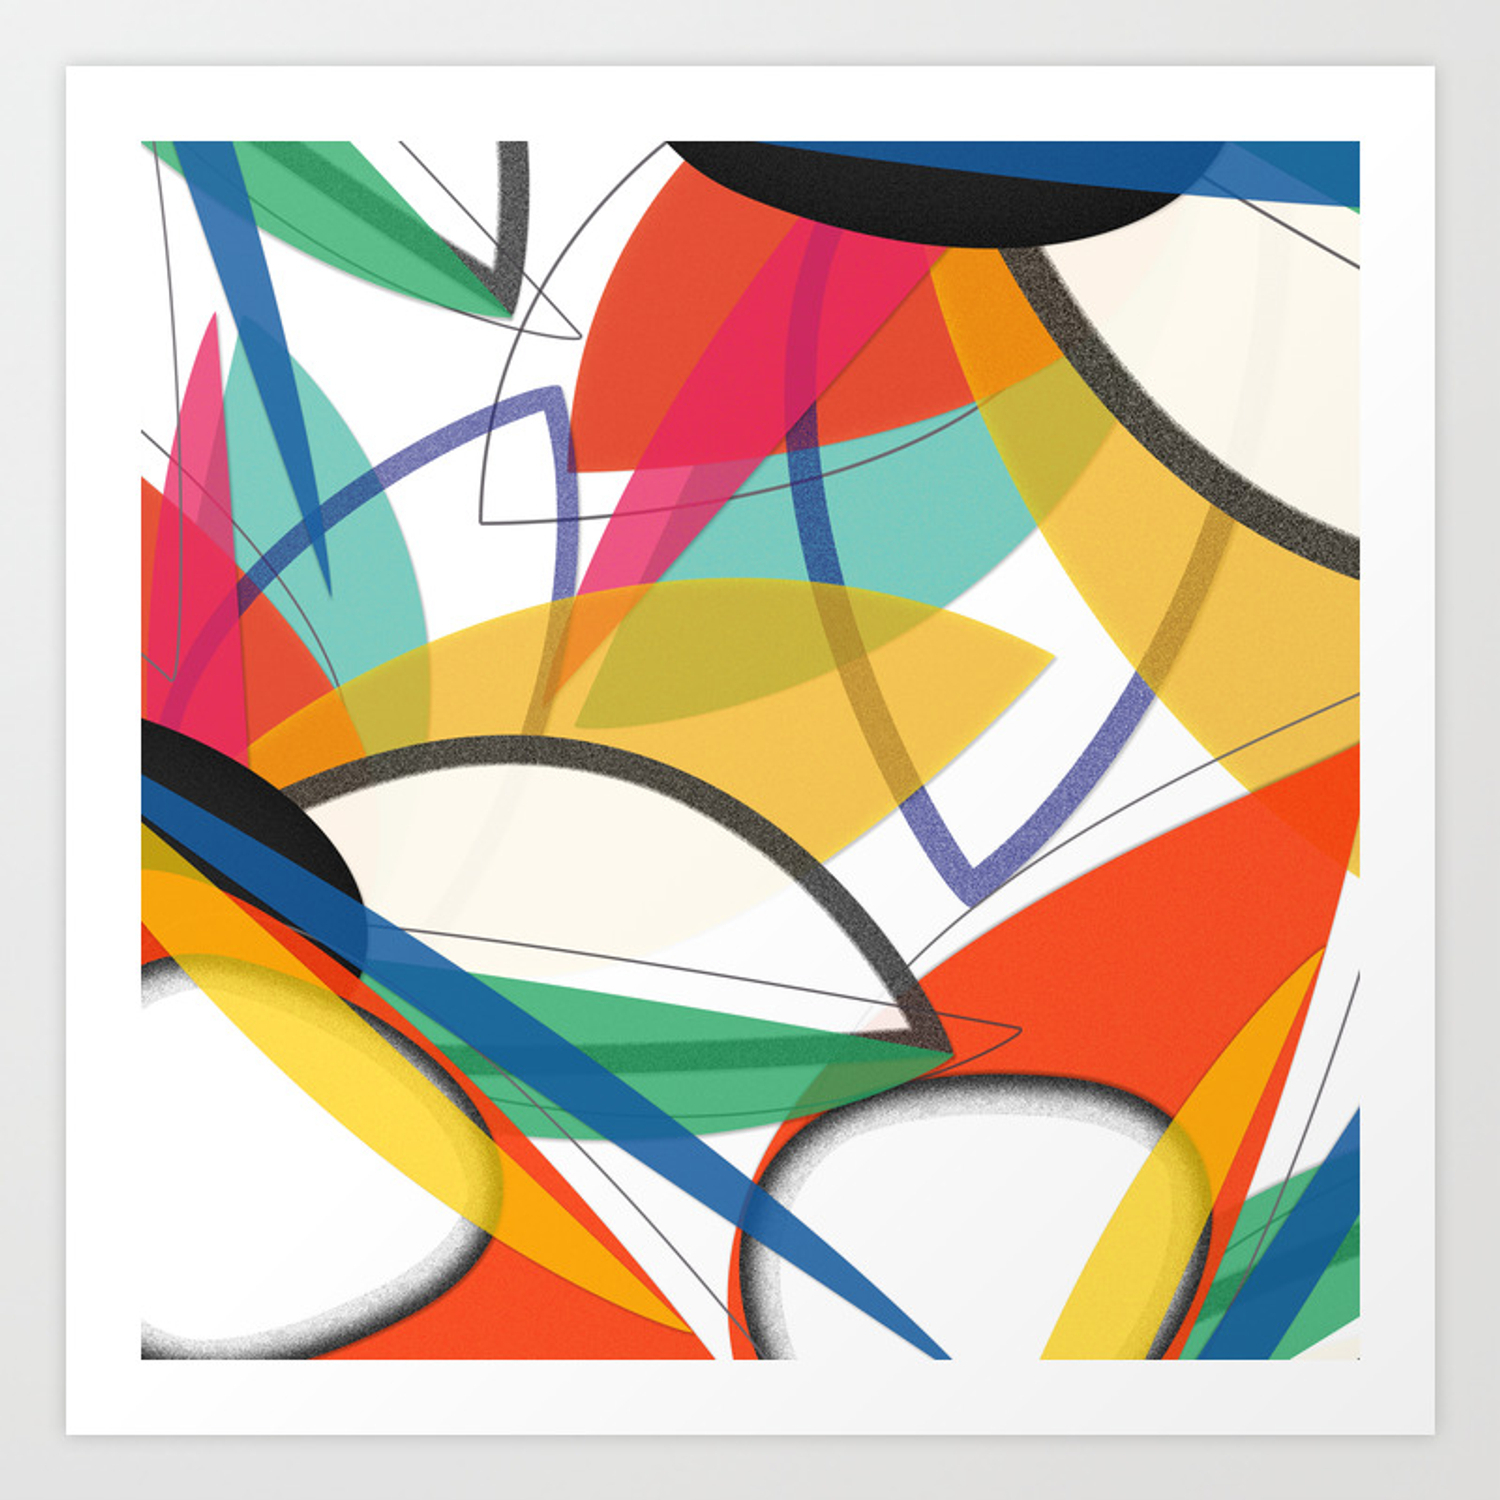 Contemporary Composition Of Multicolored Abstract Flowers, Superposition Of  Geometric Shapes Art Print pertaining to Multi Colored Geometric Shapes Credenzas (Image 6 of 30)